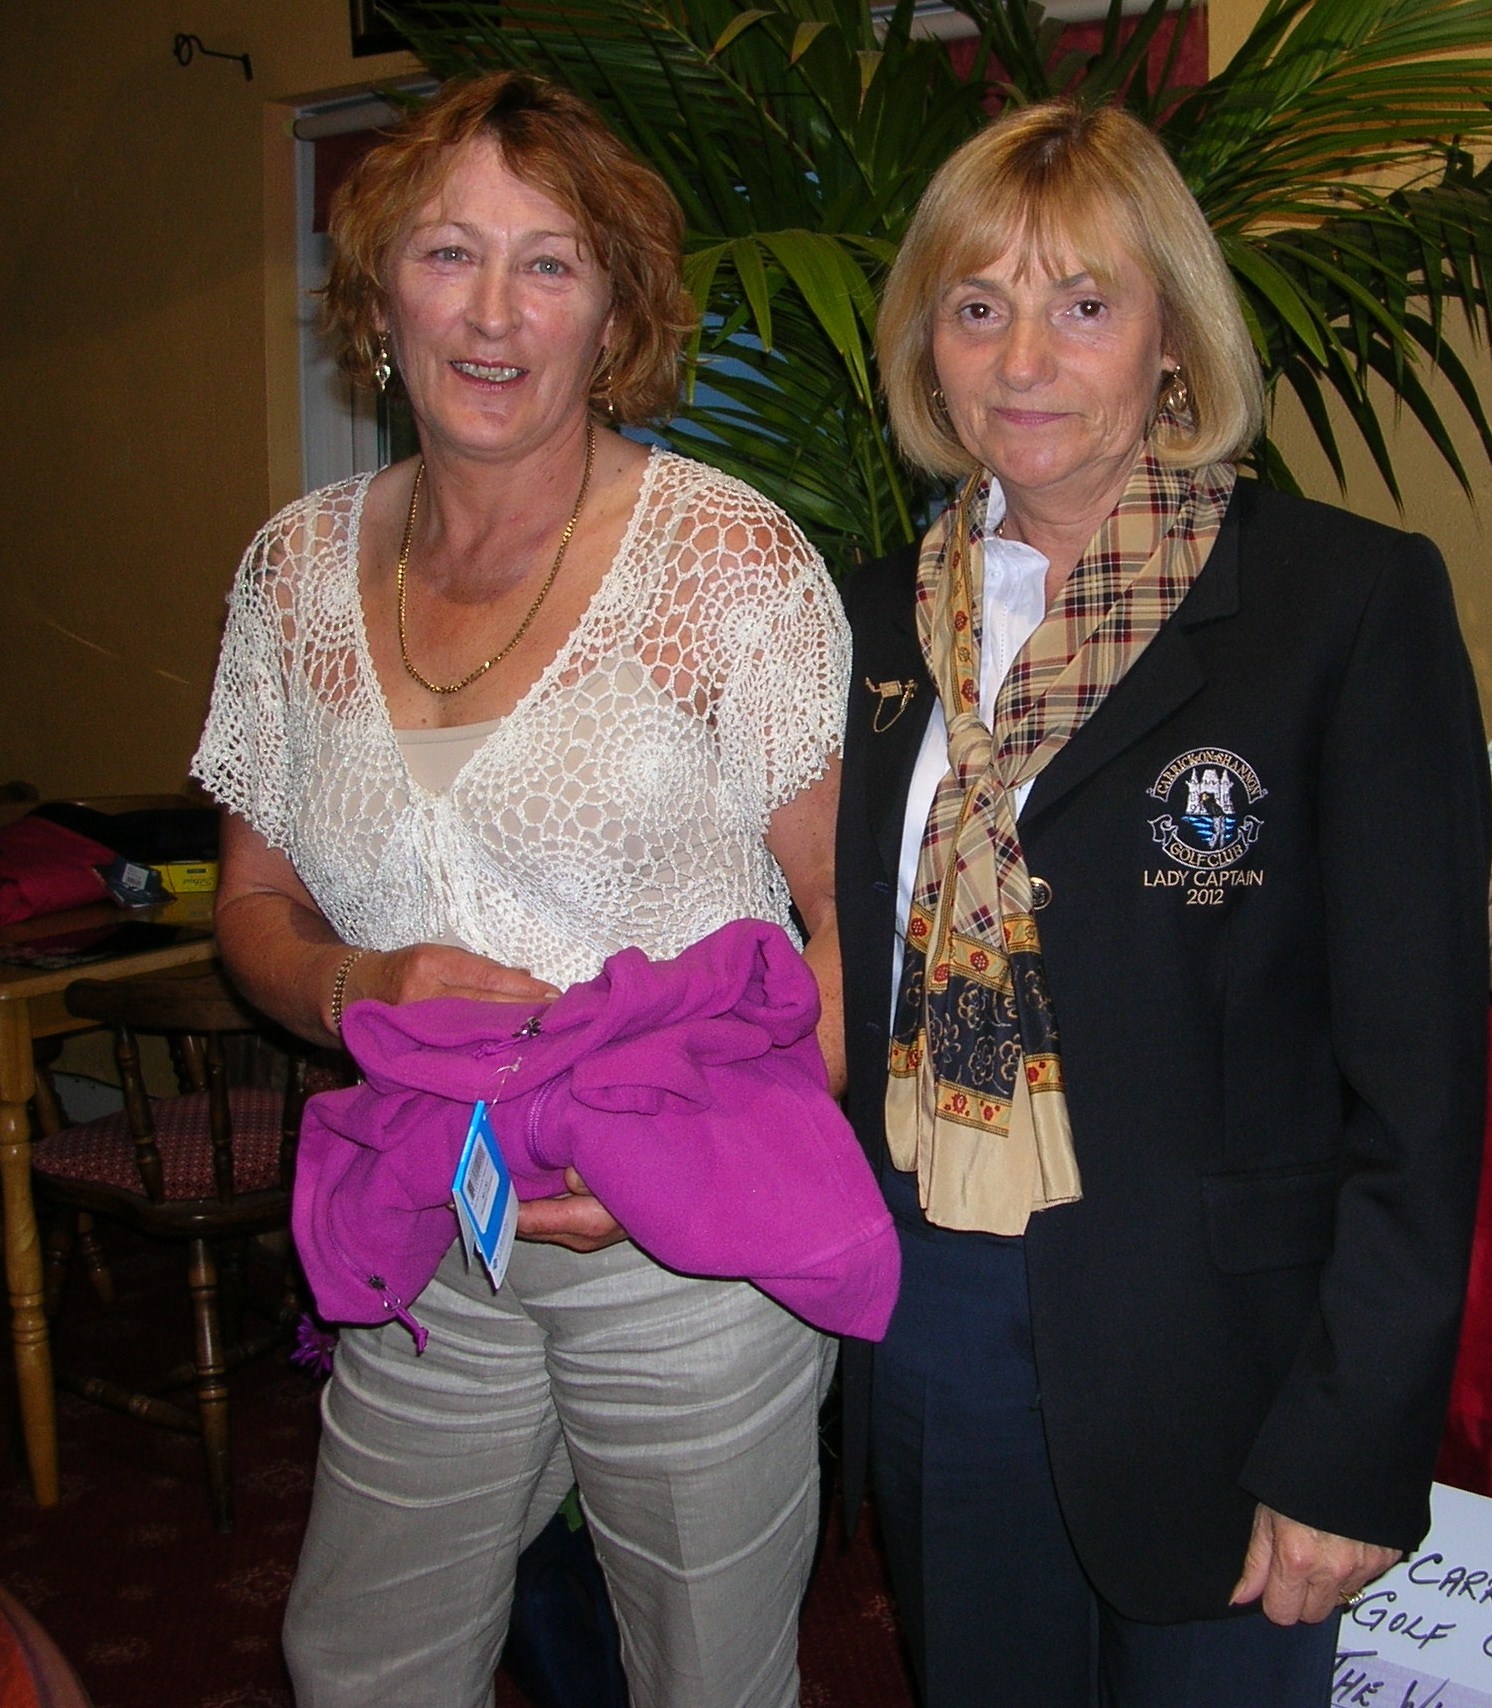 Donnellan Insurance Stroke 2012. Carmel Stritch second prizewinner pictured with Lady Captain Mary King